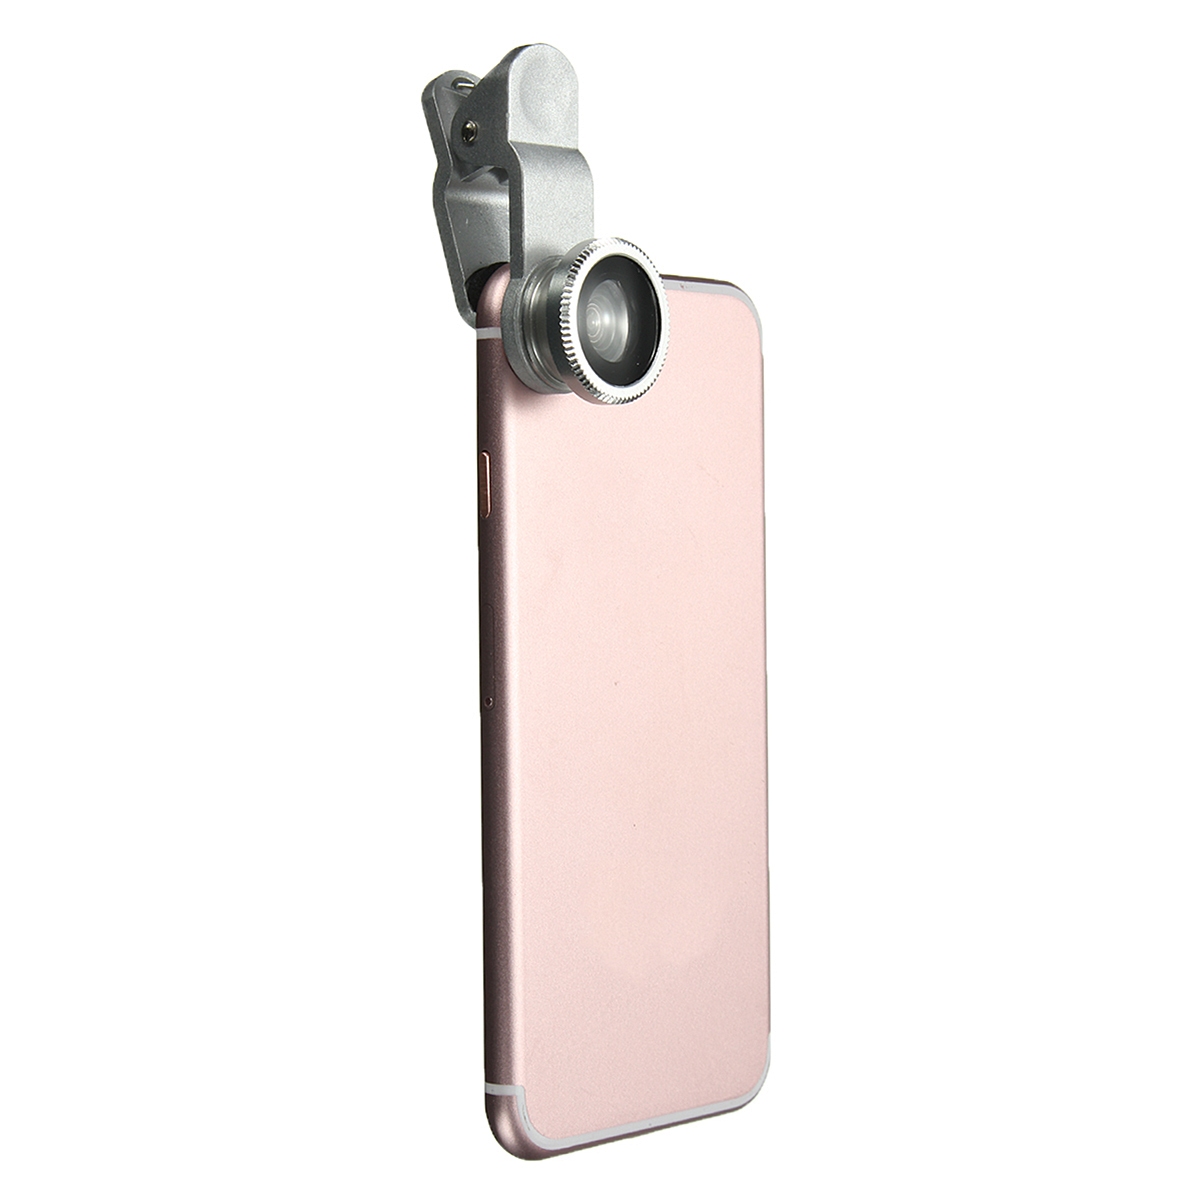 12 in 1 Accessories Phone Camera Lens Top Travel Kit For Iphone Samsung for HTC